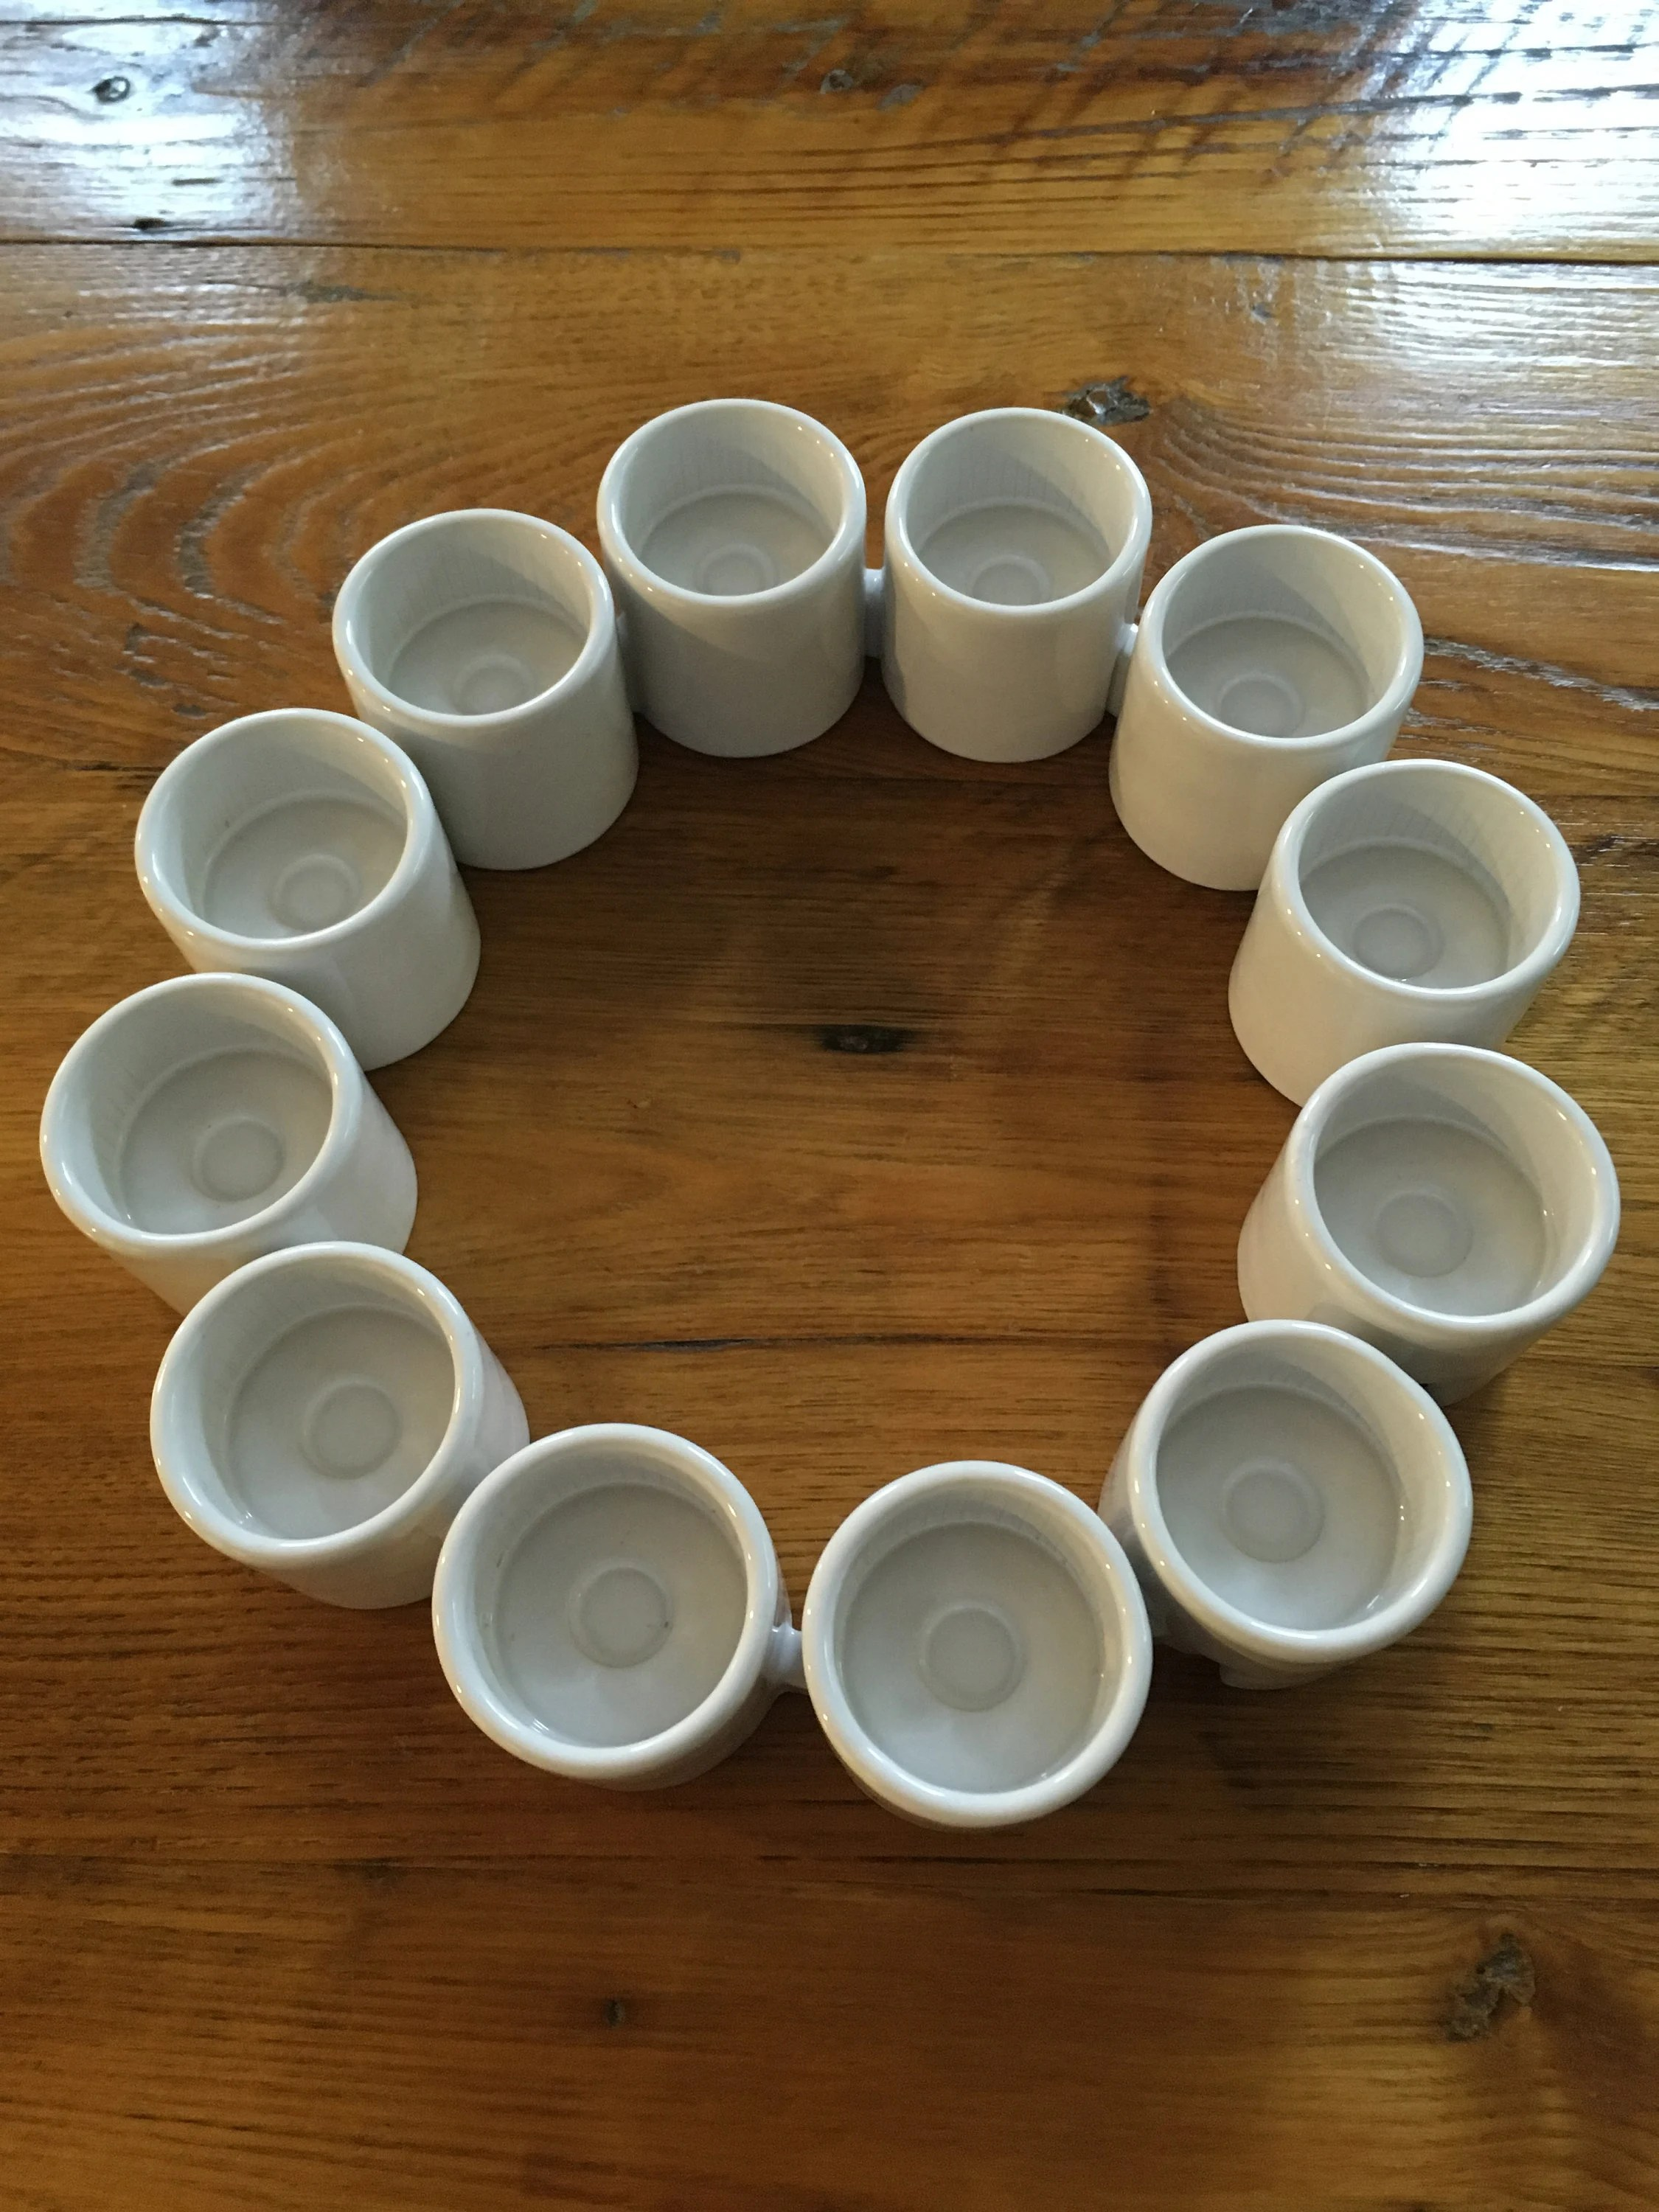 Ikea Box Holder Ikea Ehlen Johansson Candle Holder Varmeljushallare Set Of 12 Interlocking With Original Box